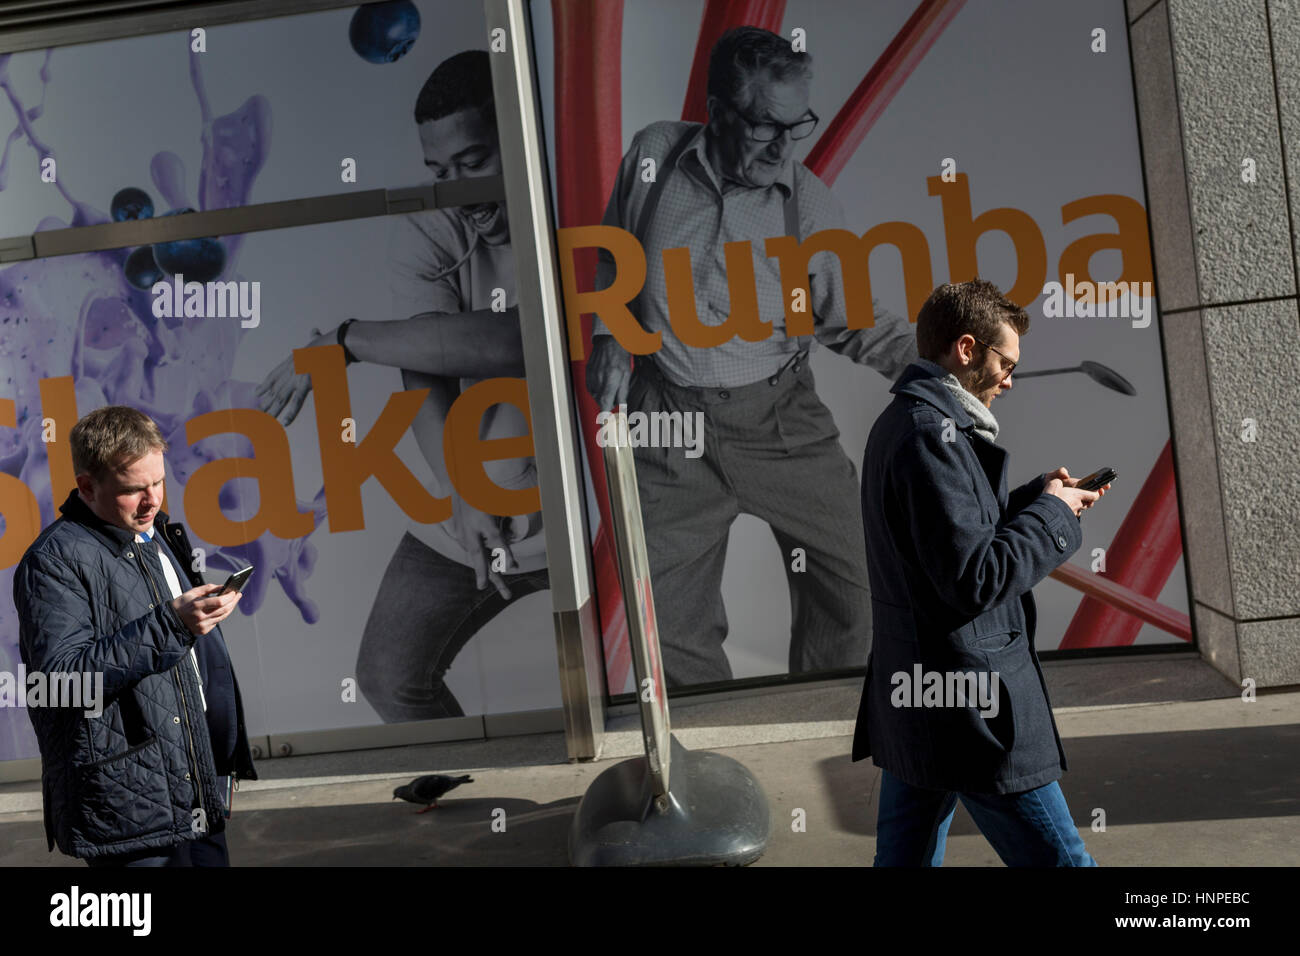 Two men walk and check social media, in front of a Sainsbury's poster, on 13th February 2017, in the City of - Stock Image